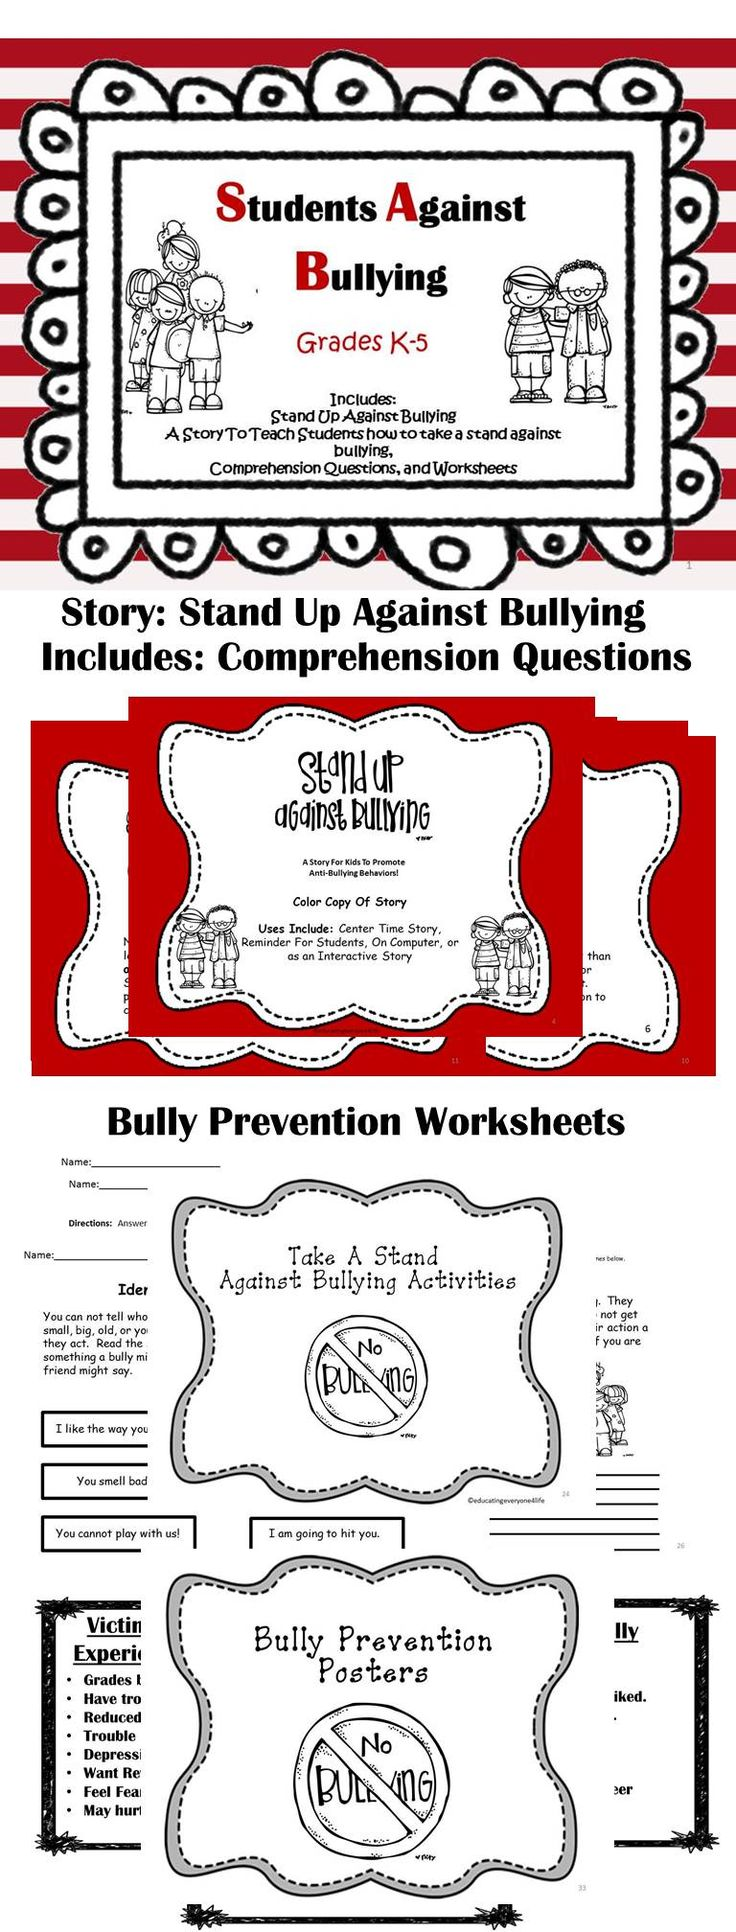 worksheet Bullying Worksheets 1000 ideas about bullying worksheets on pinterest stop in the classroom a variety of activities to promote safe environment for